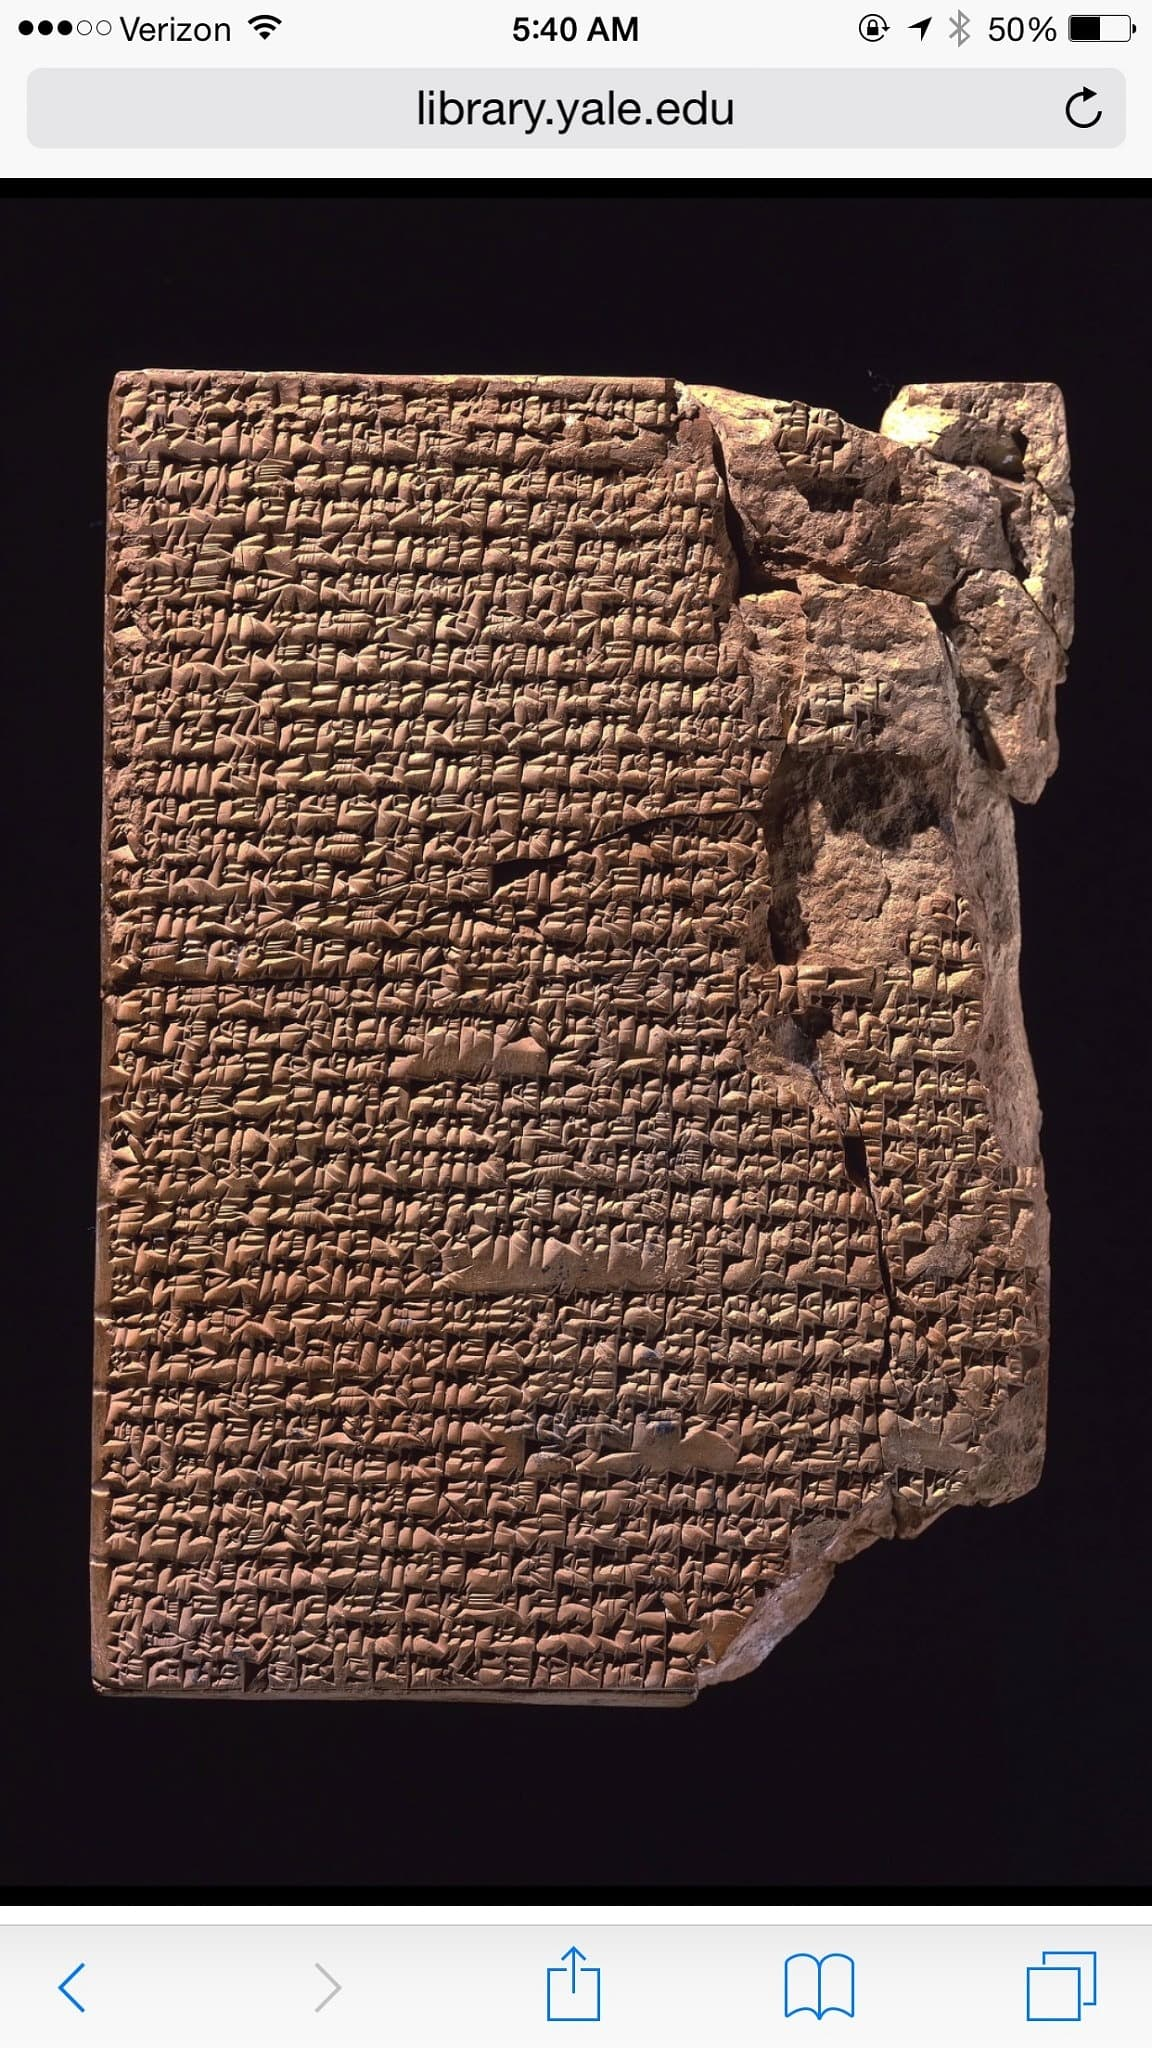 The Oldest Recipes in the World - BabylonianTranscriptions of Older Sumerian Recipes From the Yale Collection